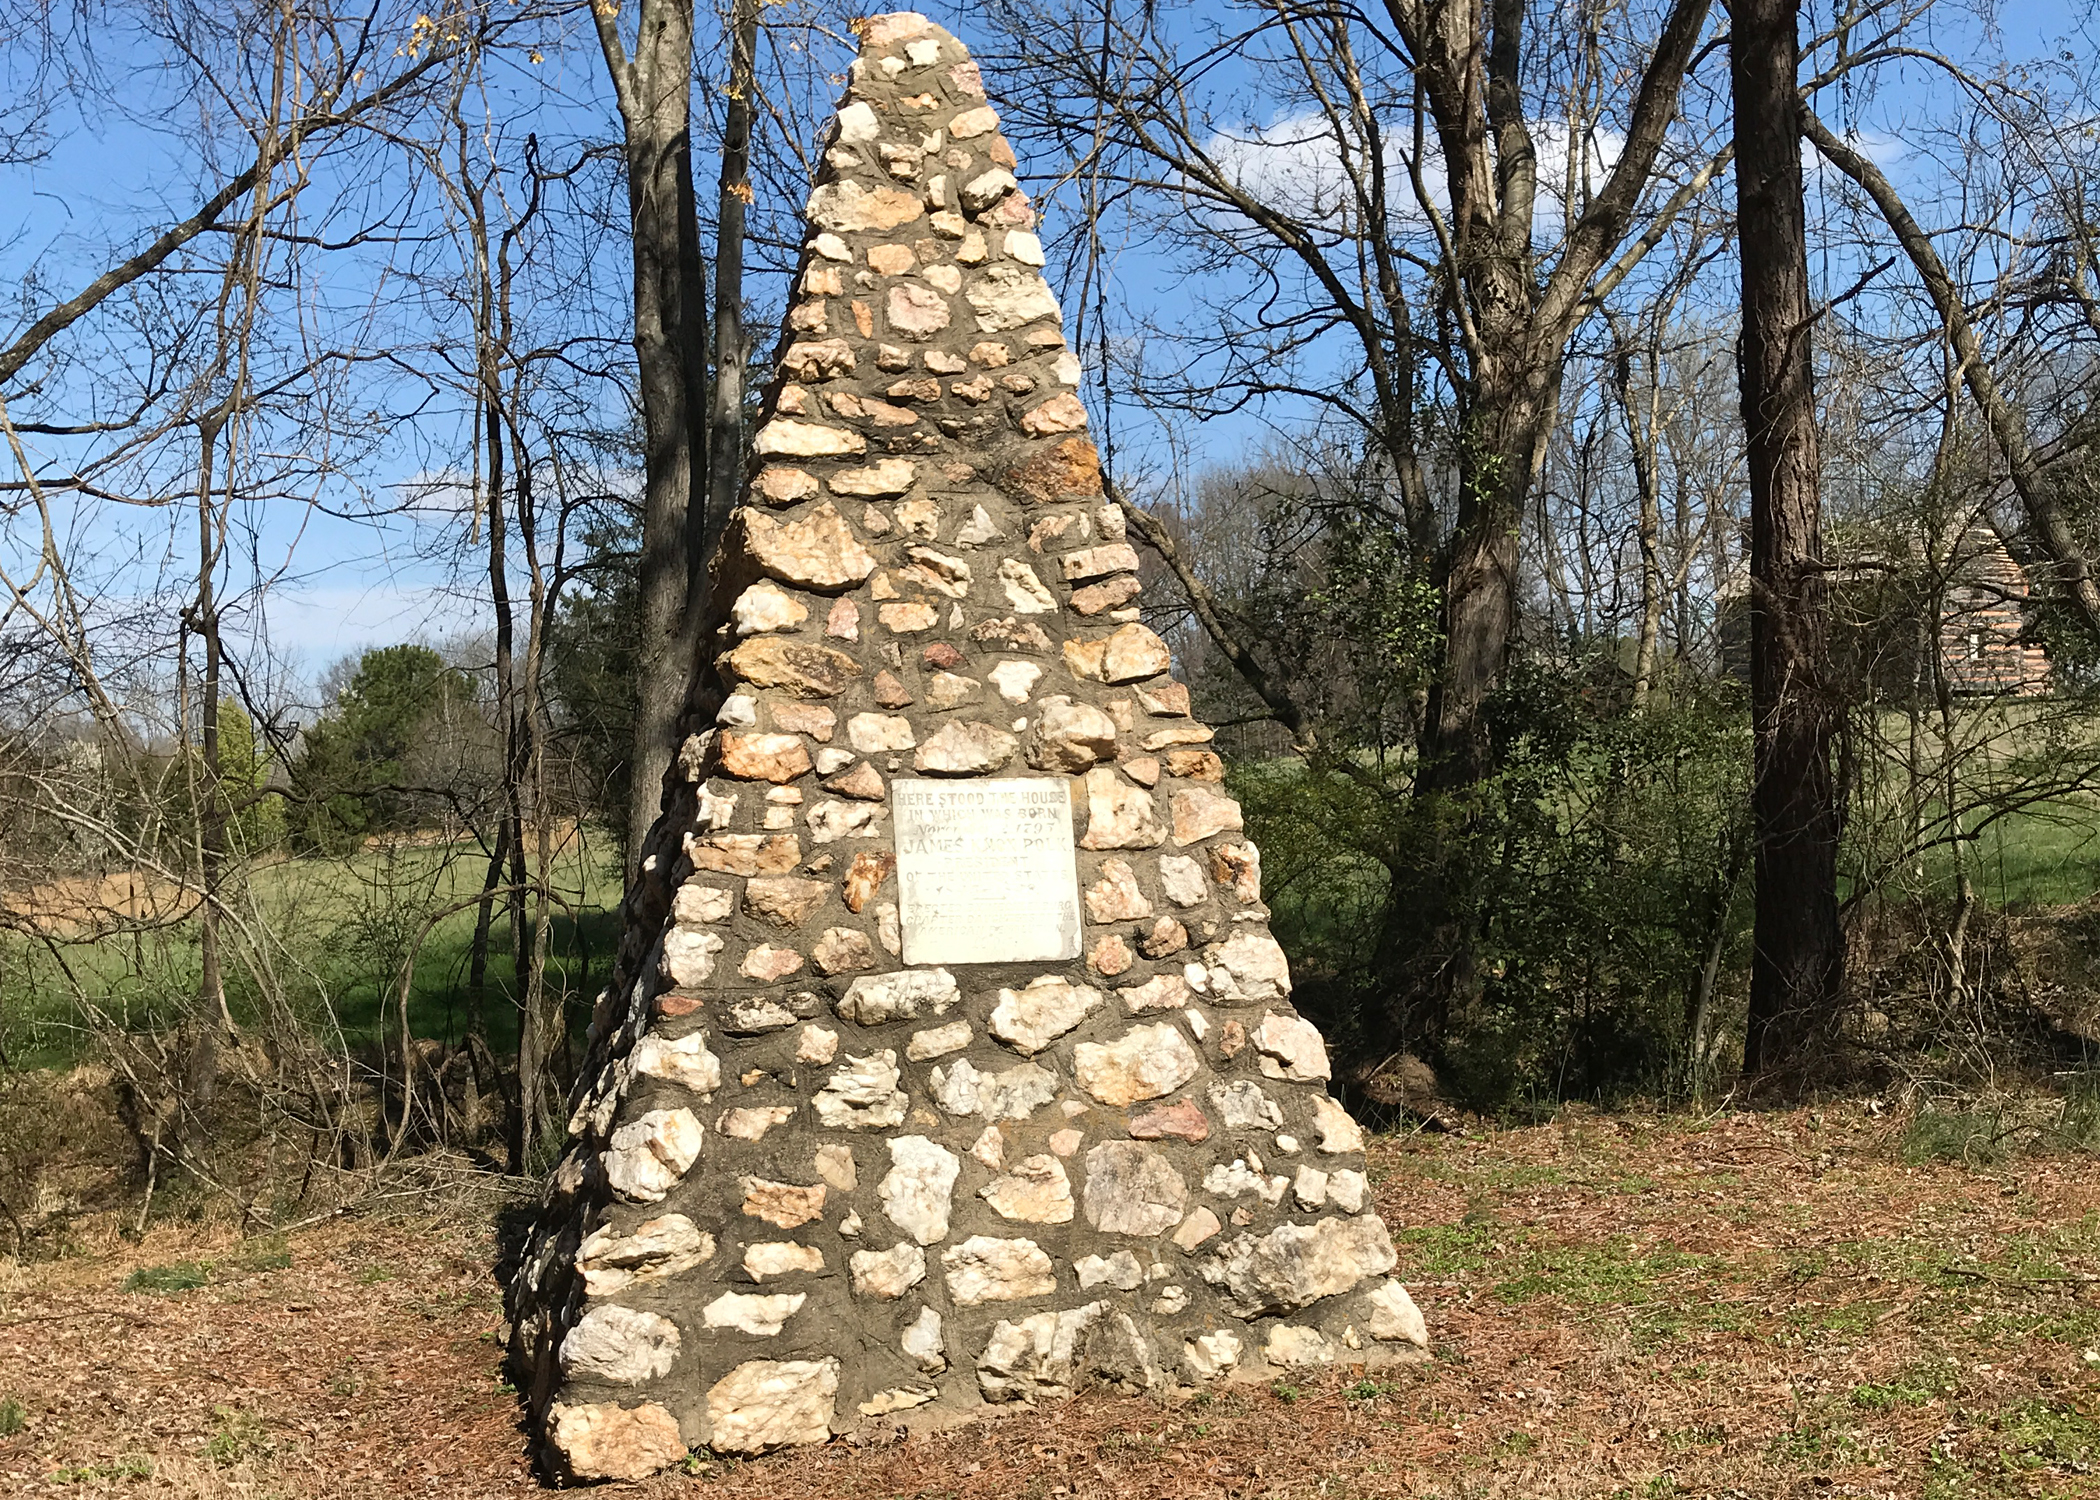 The 1904 Daughters of the American Revolution (DAR) stone monument